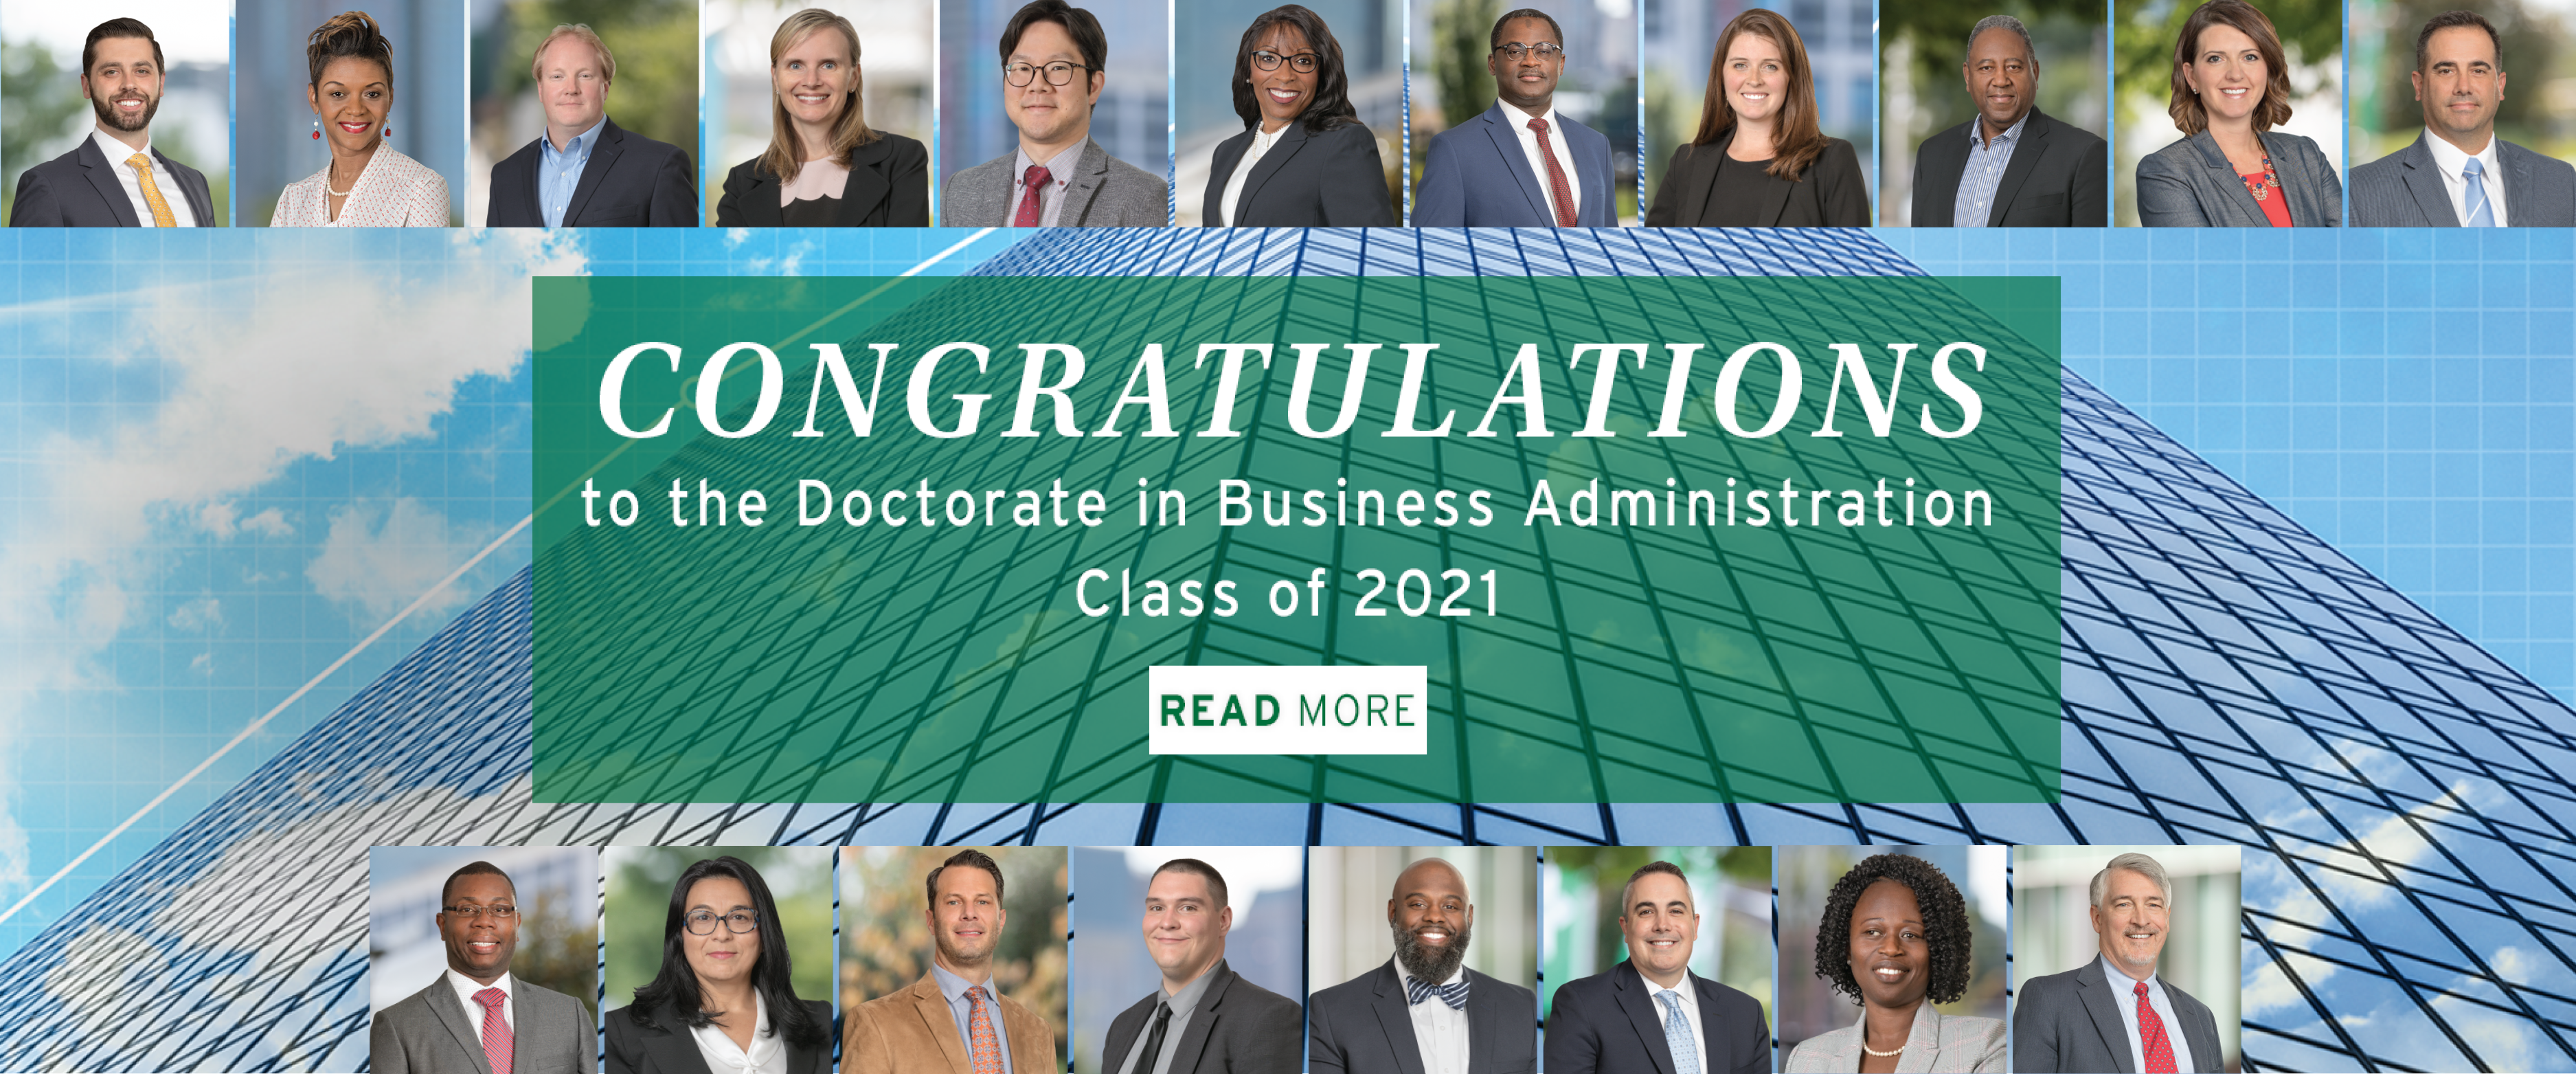 Doctorate of Business Administration Class of 2021